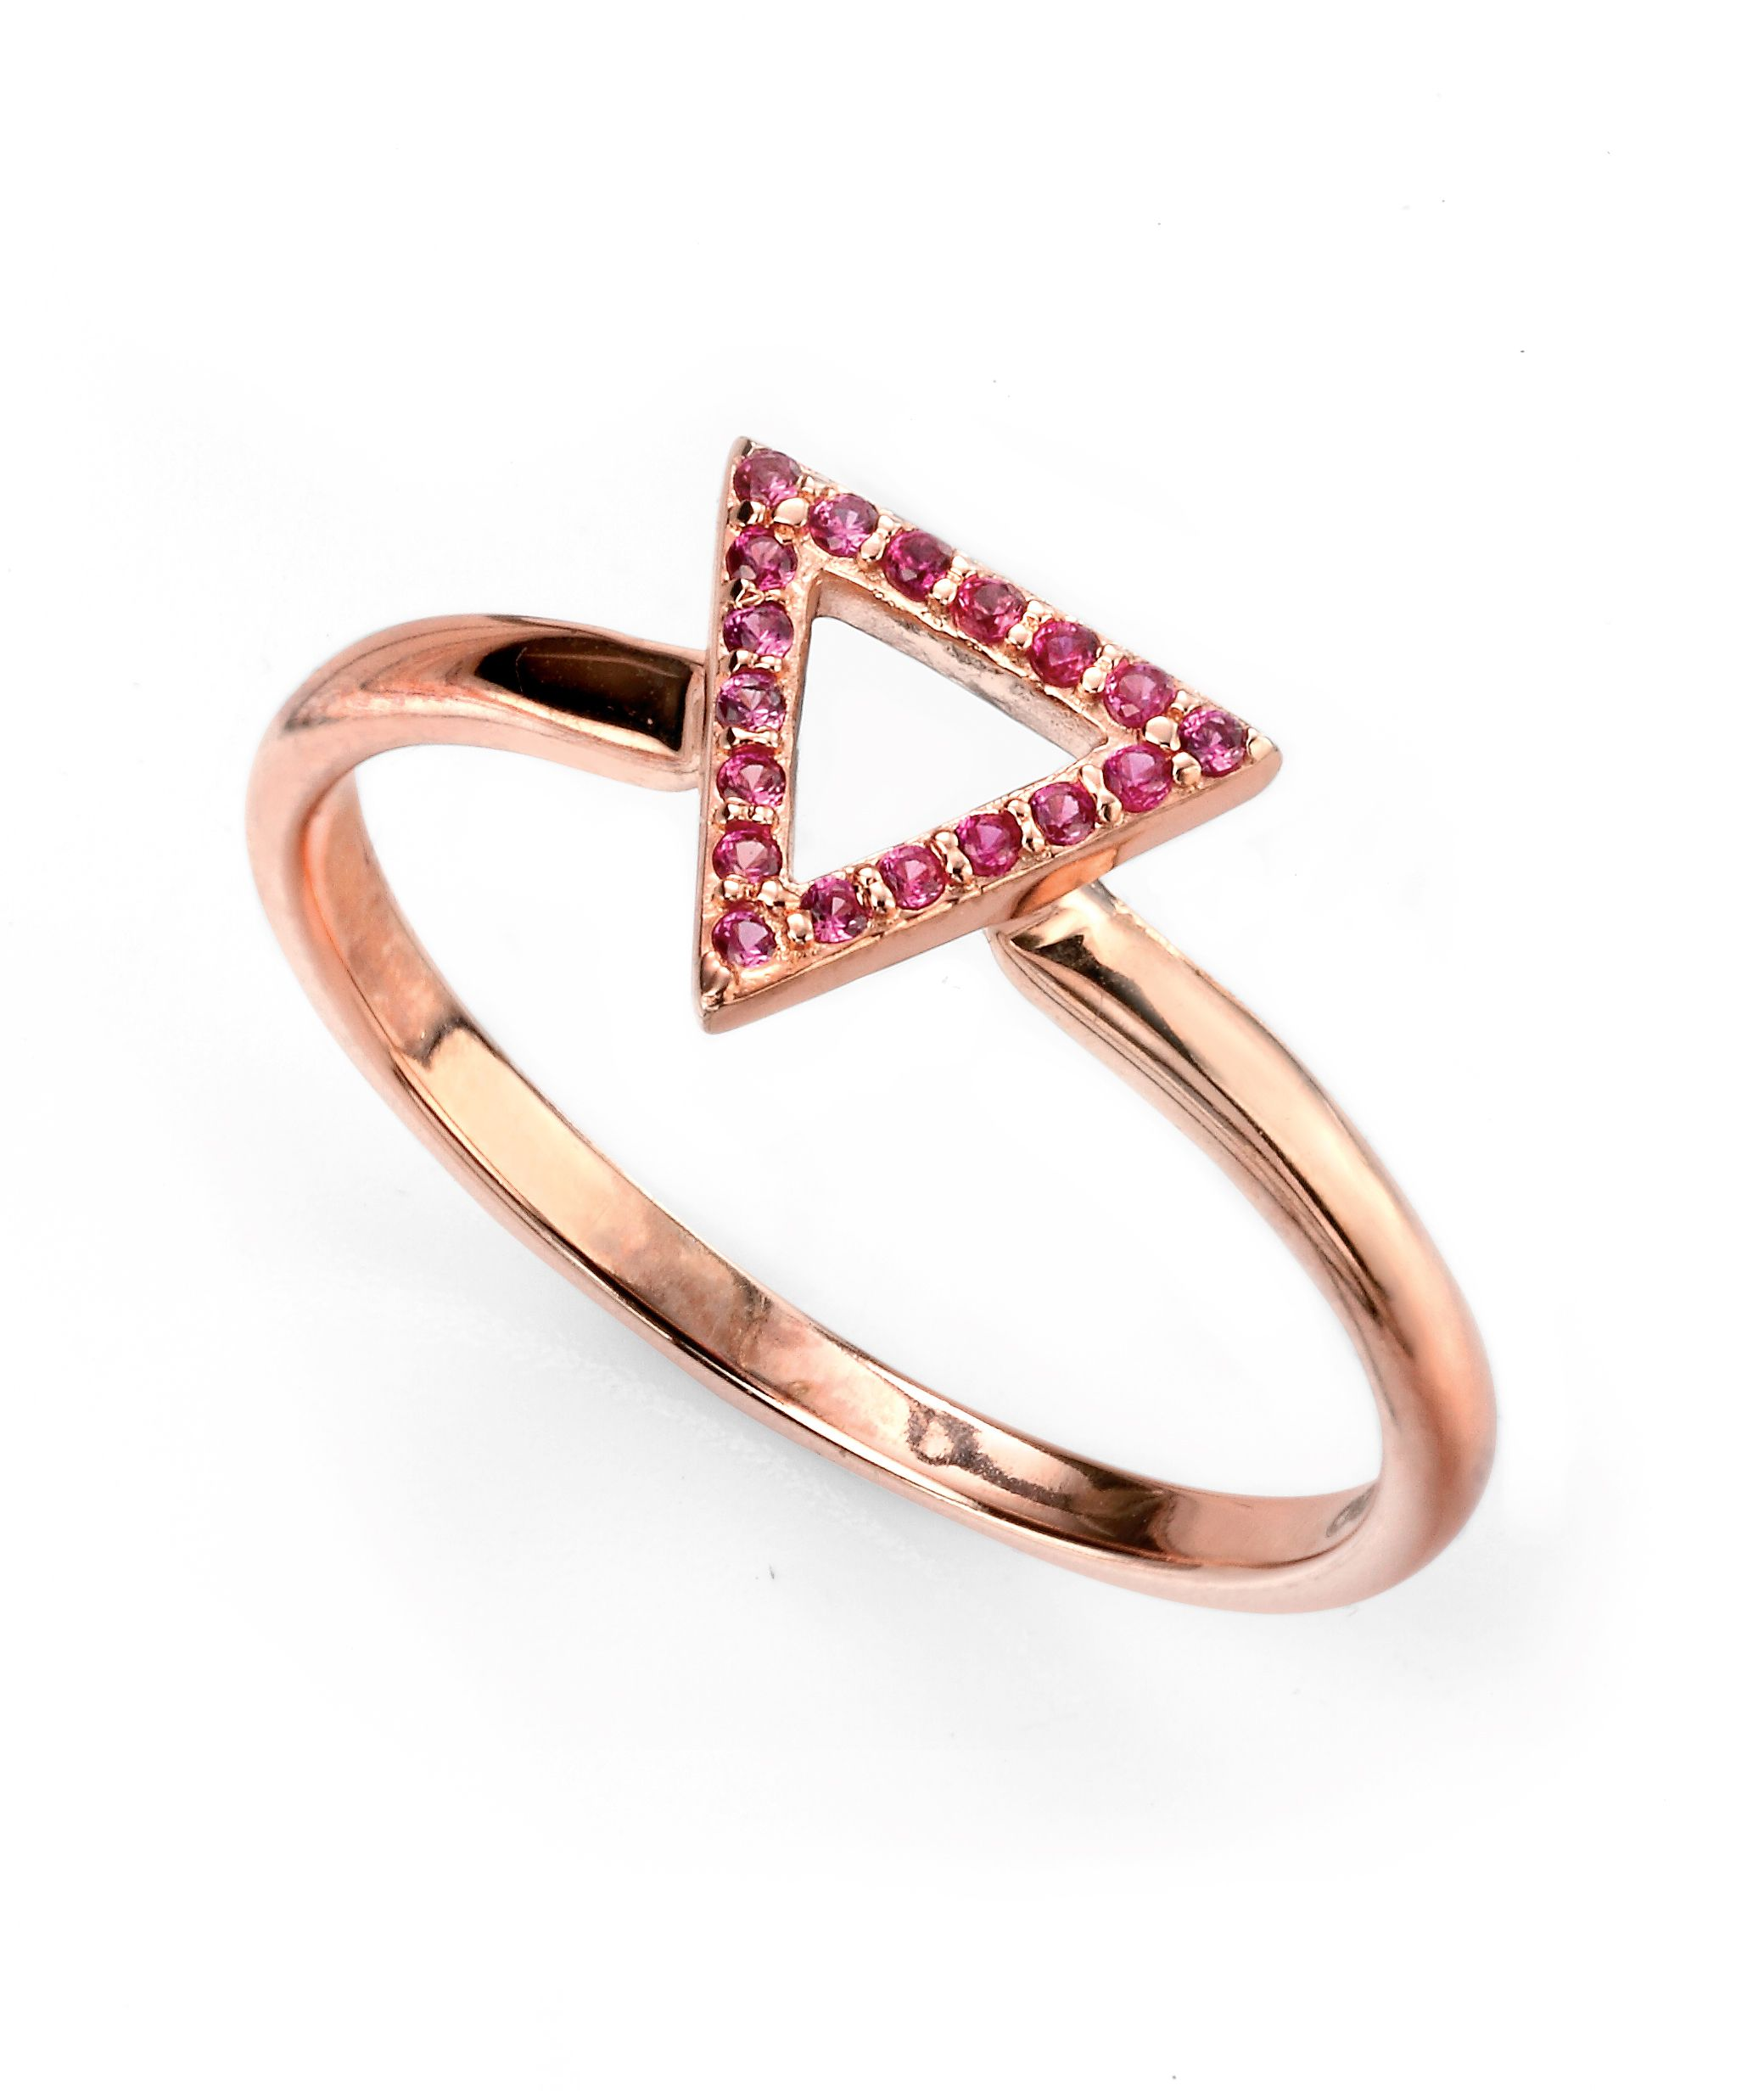 Elements Silver Ladies 925 Sterling Silver Rose Gold Plated Pink Cubic Zirconia Open Triangle Ring